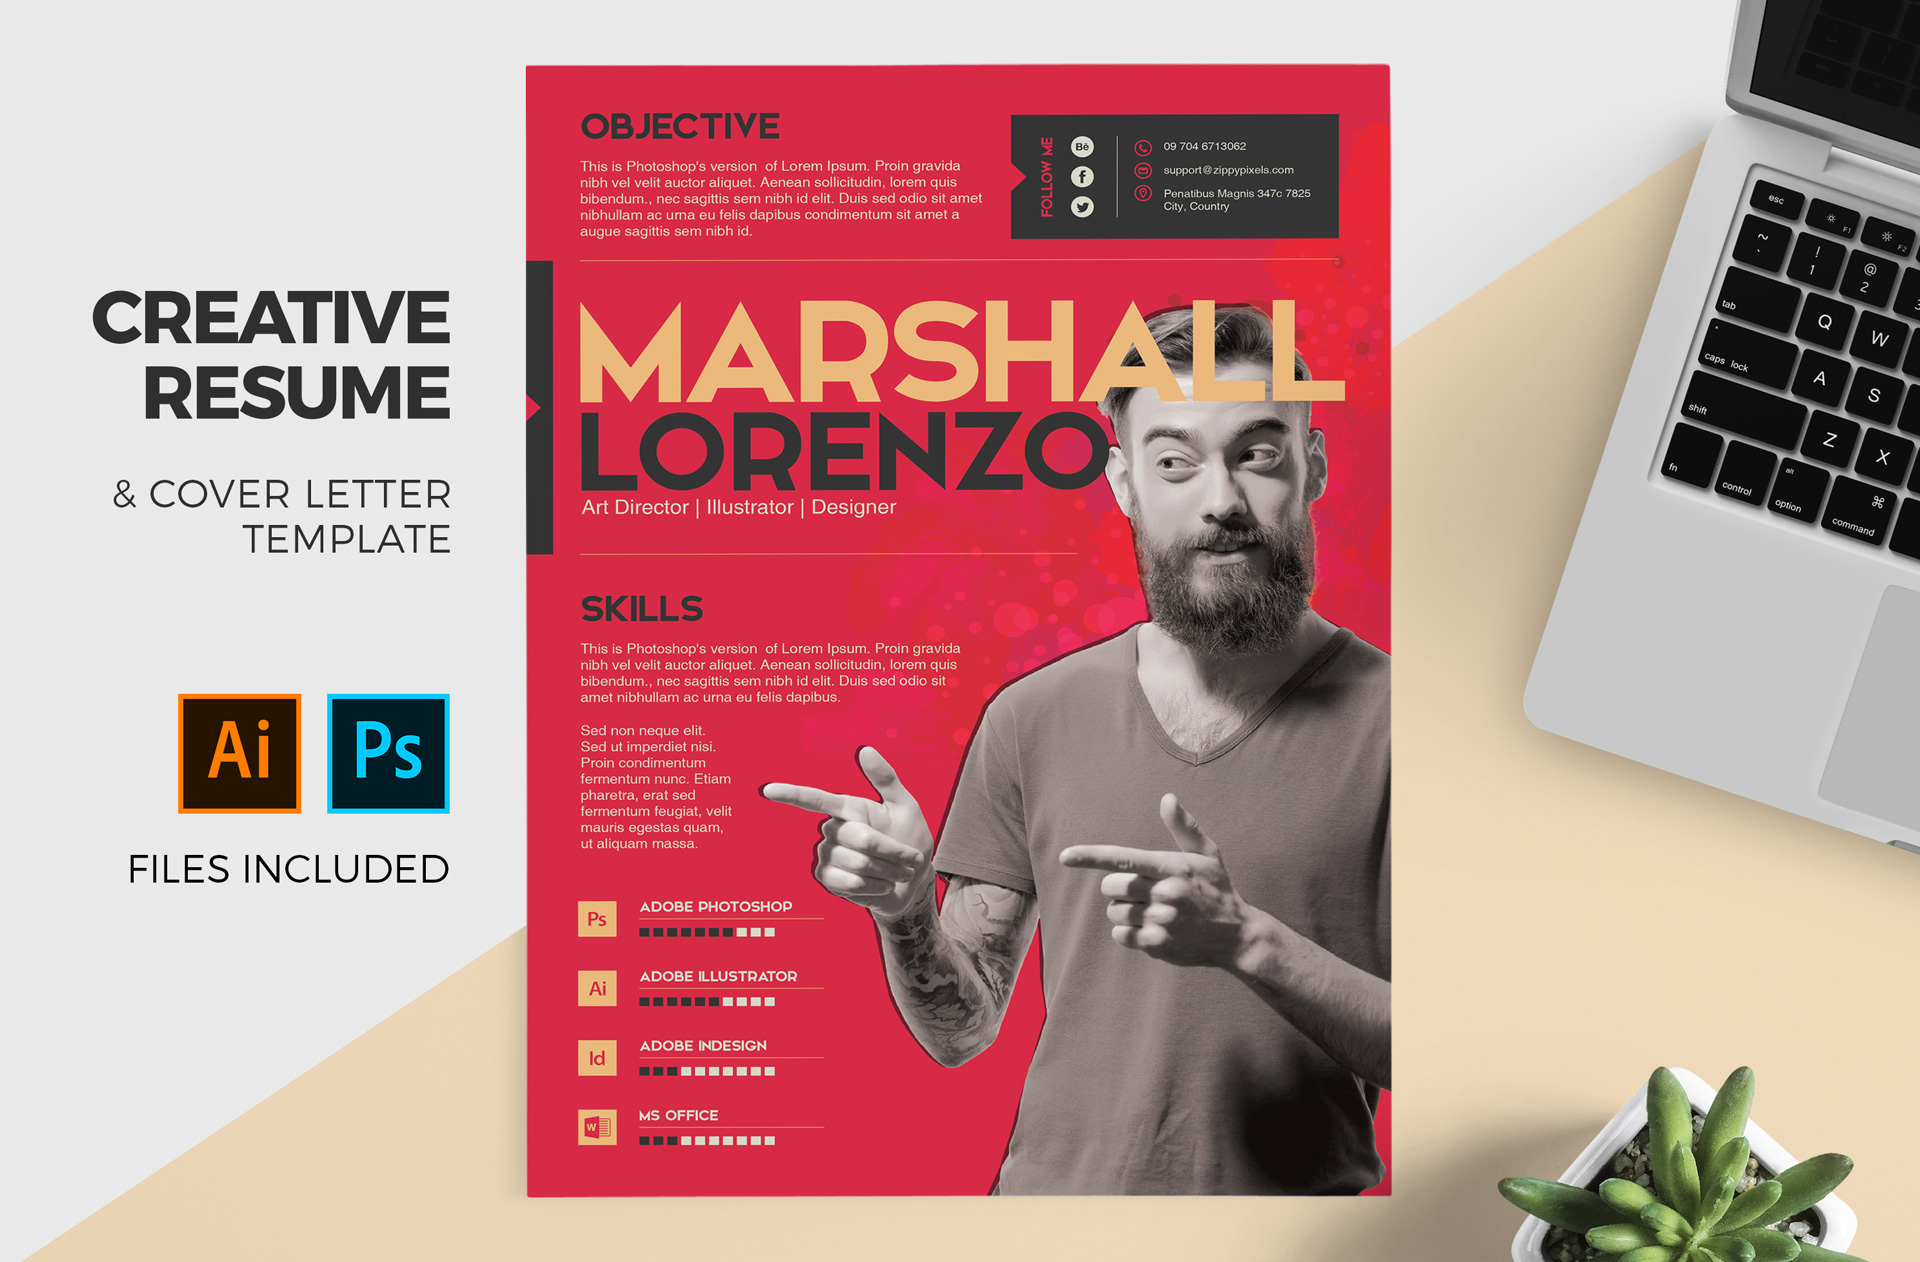 Creative Resume Cover Letter Template For Designers PSD AI